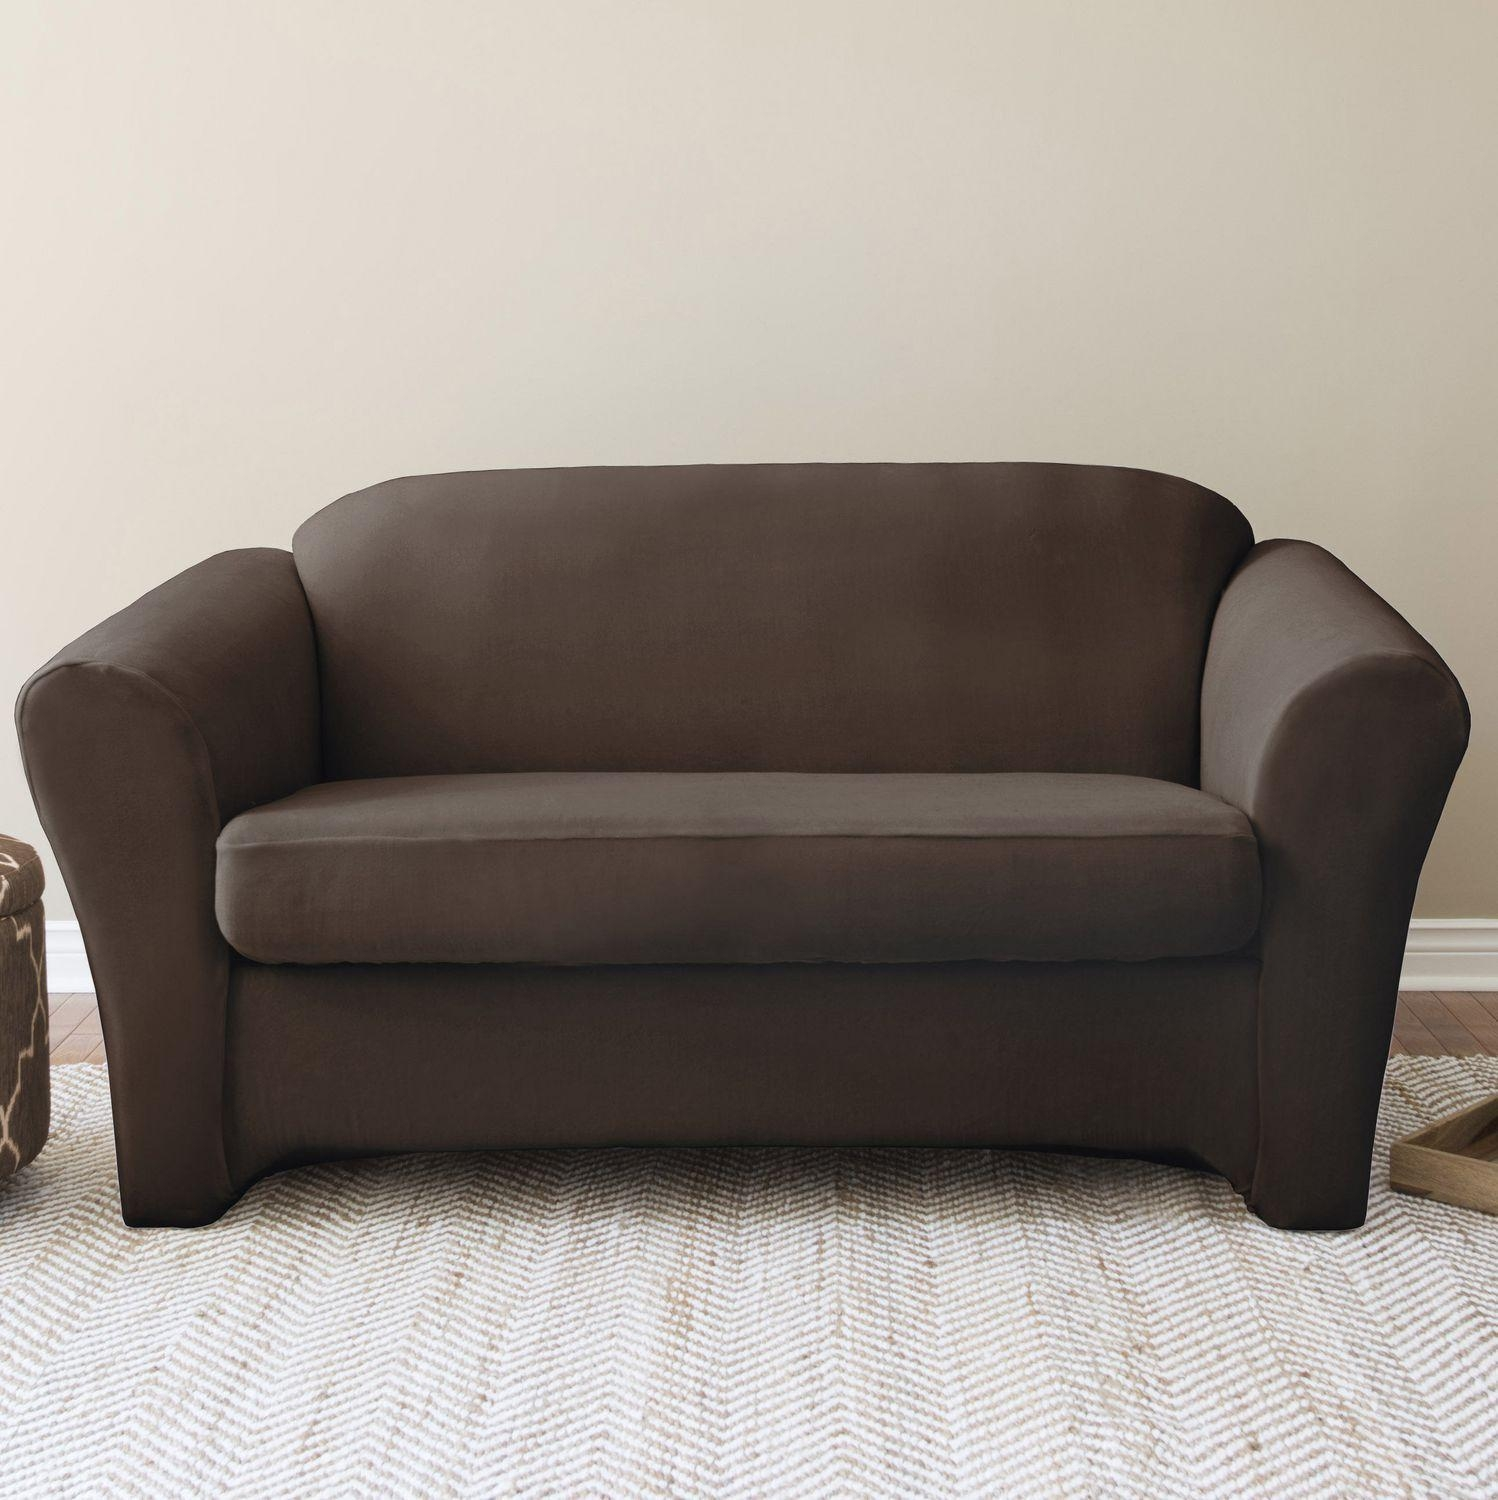 Furniture: Perfect Living Room With Sofa Slipcovers Walmart For Pertaining To Black Sofa Slipcovers (Image 12 of 20)